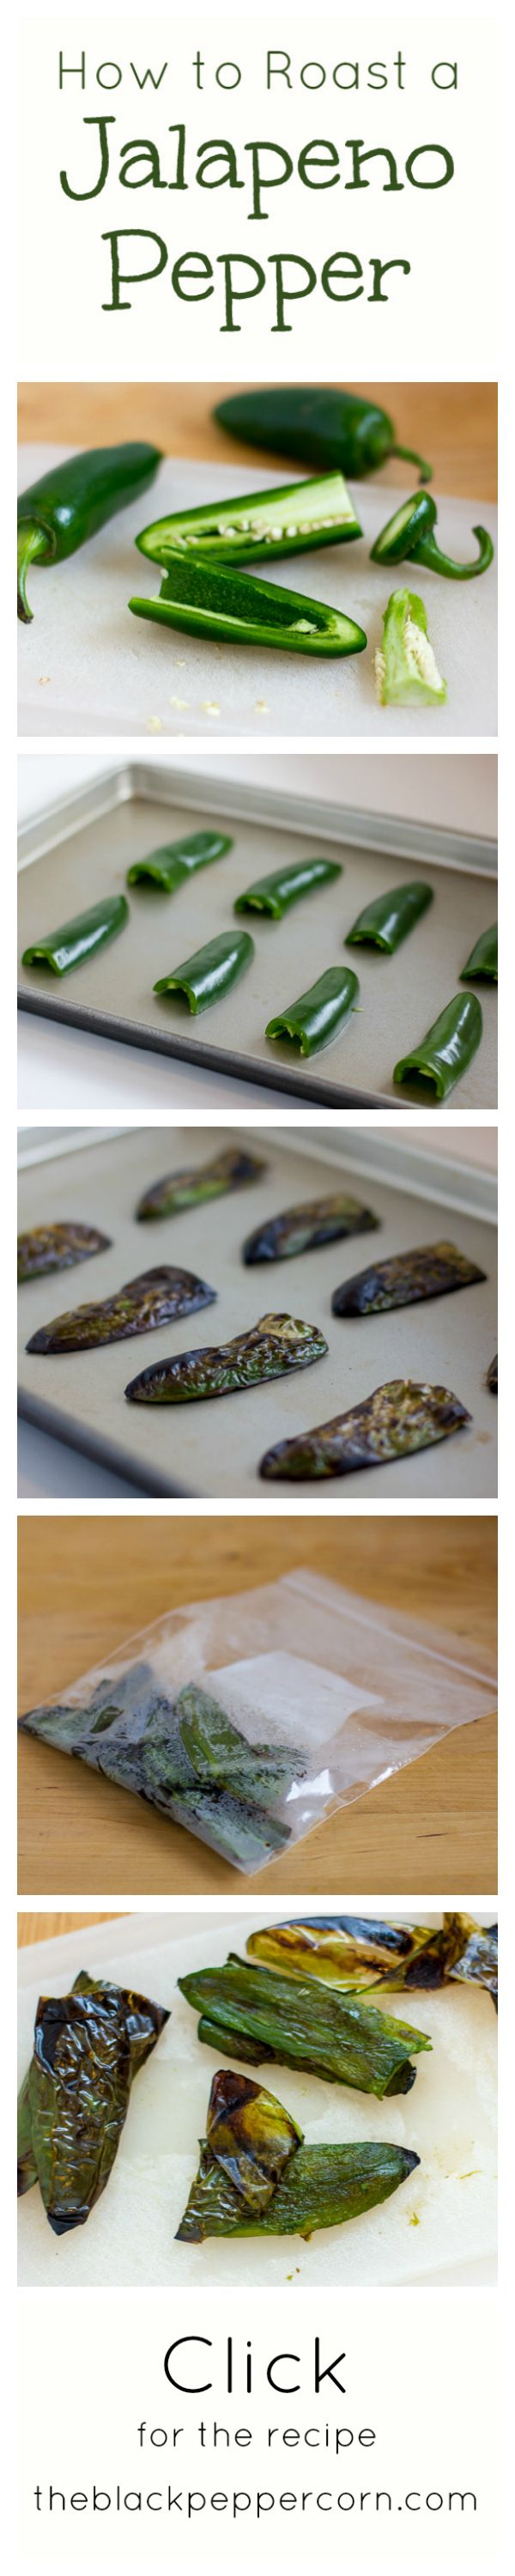 How+to+Roast+a+Jalapeno+Pepper+in+the+Oven